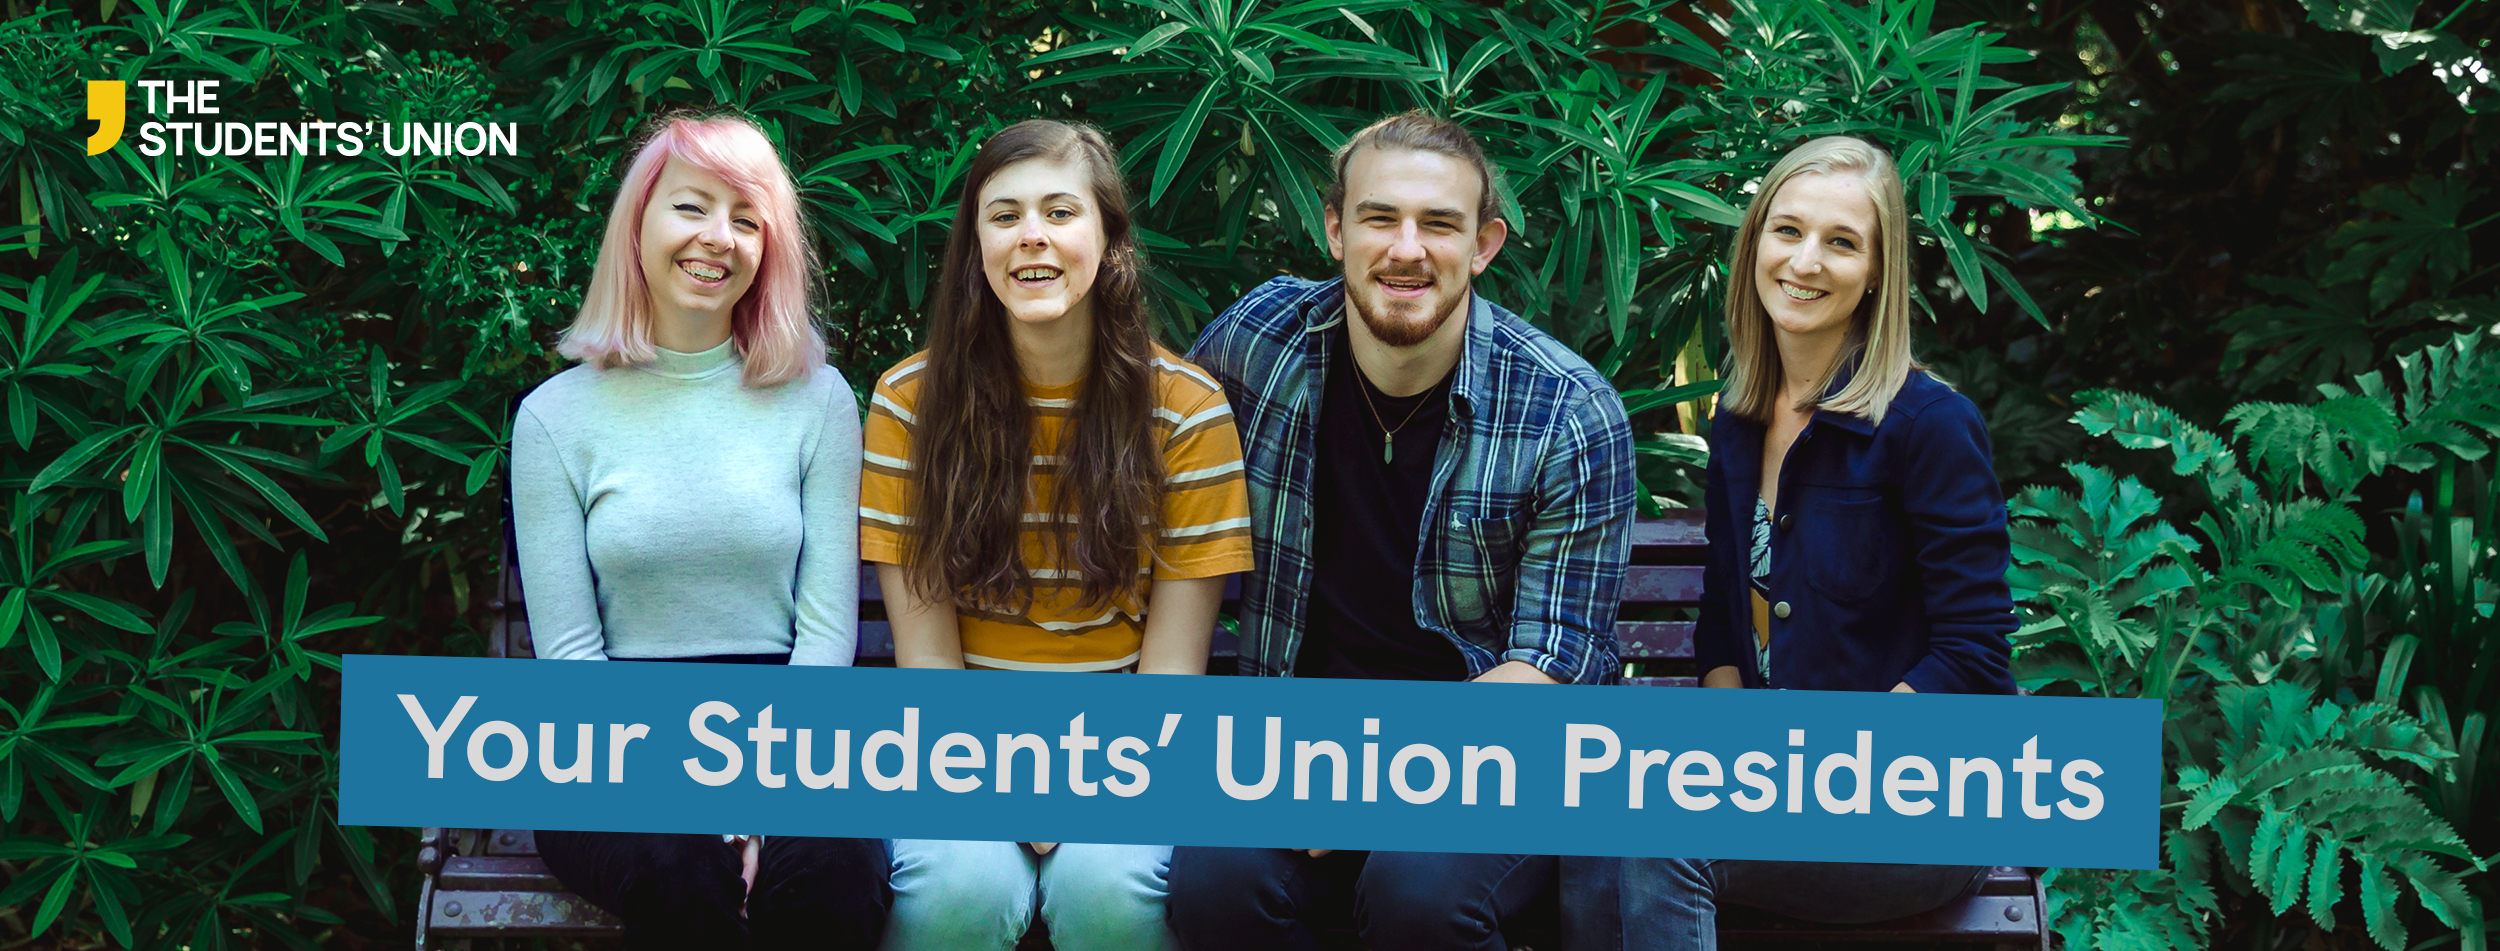 The SU Presidents 2019/20